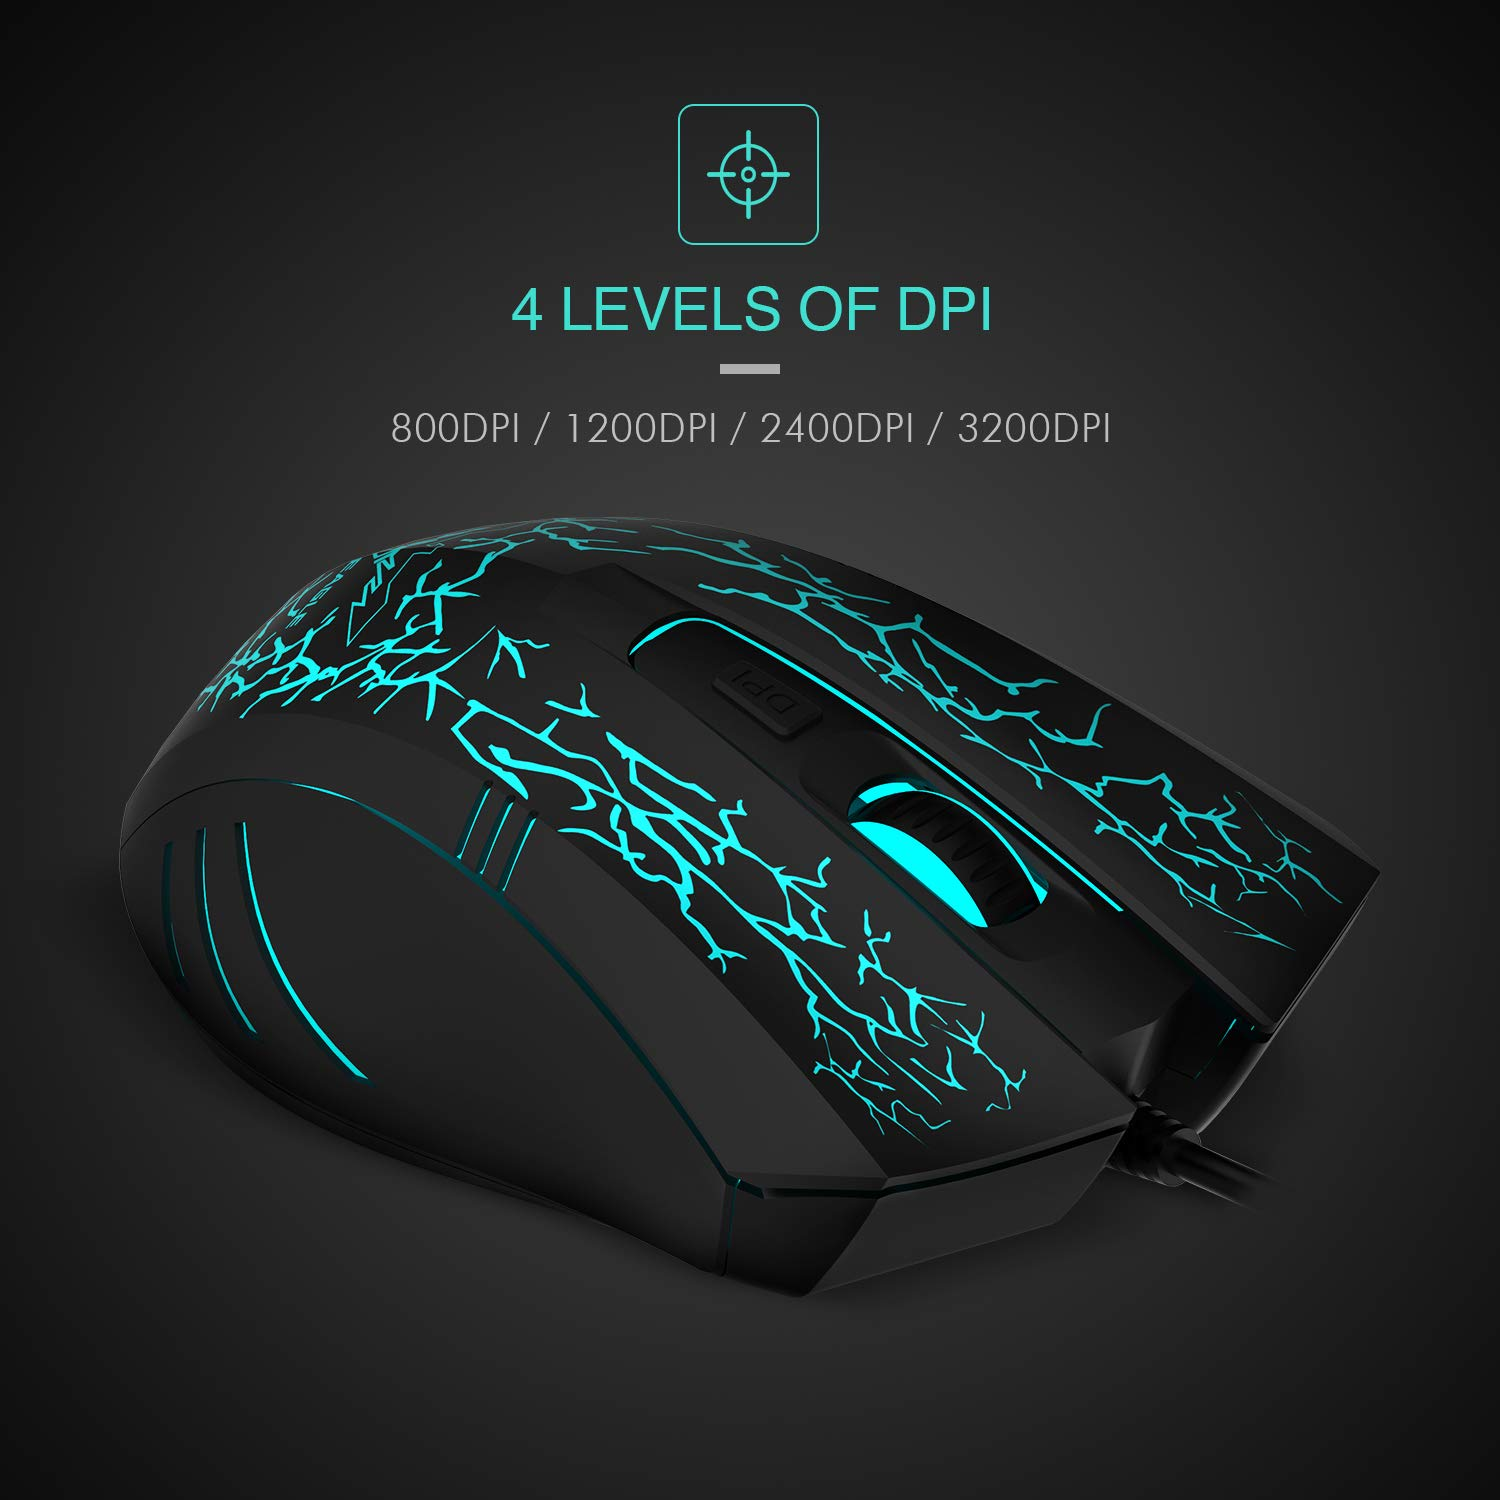 Havit HV-MS672 Ergonomic LED Stress-ease Wired Mouse with 7 Soothing LED Colors, 6 Buttons, [Importado de Reino Unido]: Amazon.es: Electrónica